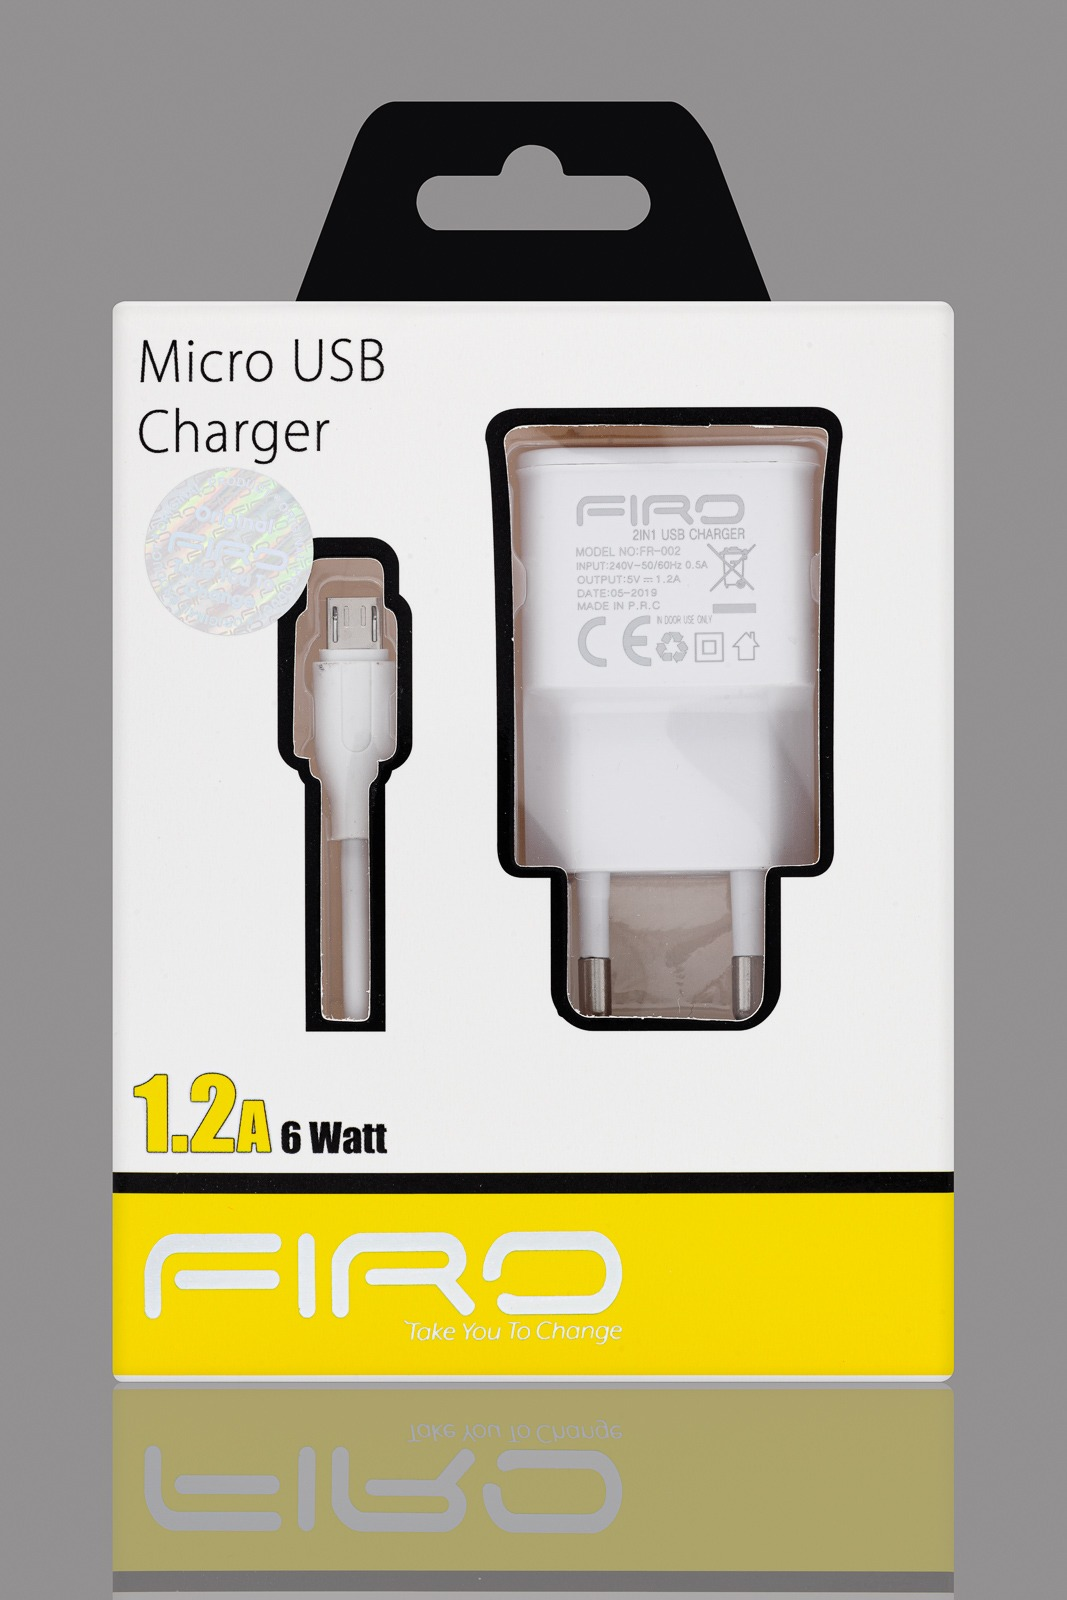 FIRO MICRO USB CHARGER 1-2A 6W